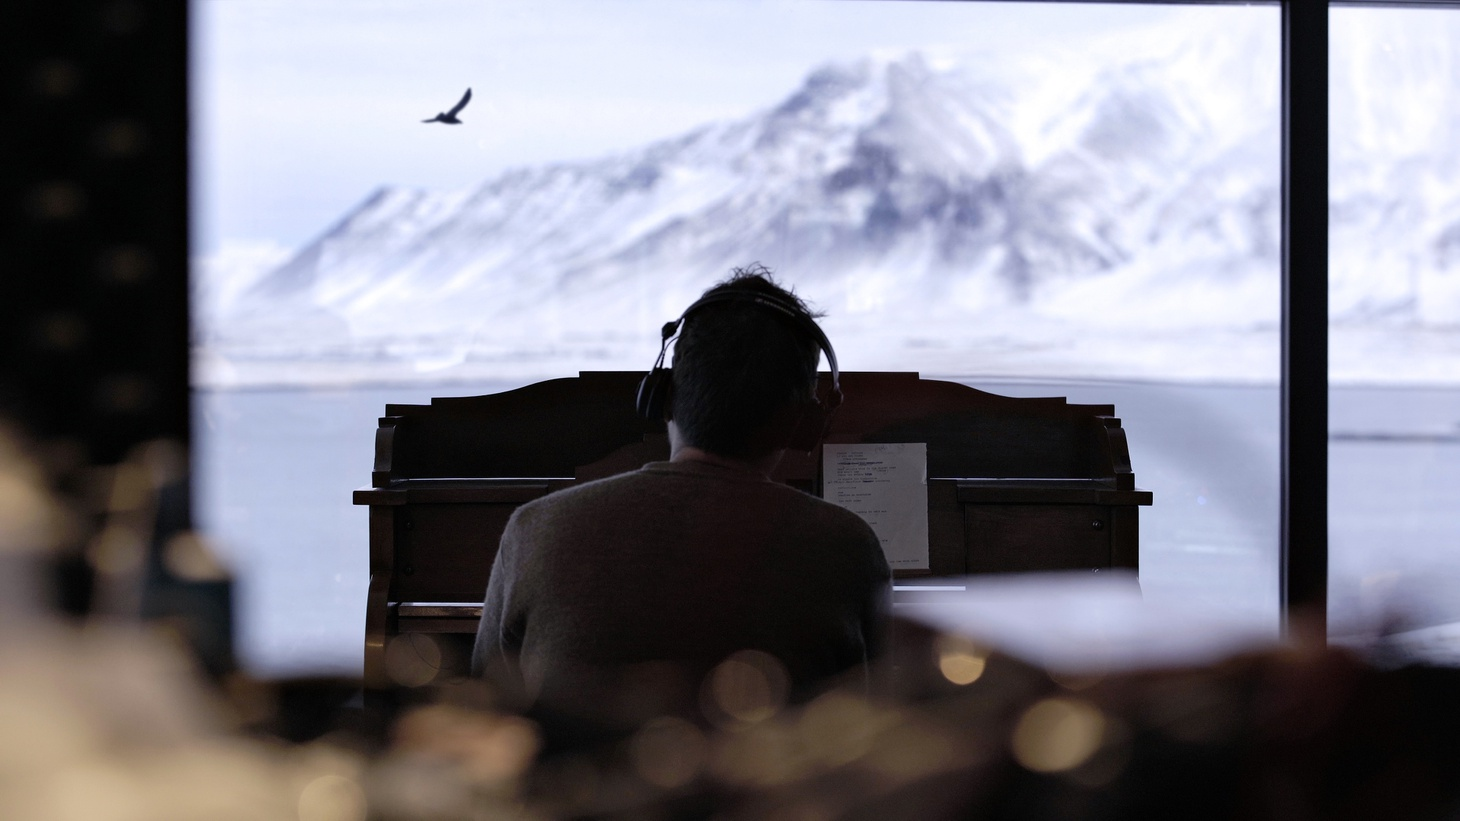 """Shapeshifting musical guru Damon Albarn positioned his piano to overlook the sea in Iceland to write and record his brand new solo album, """"The Nearer The Fountain, More Pure The Stream Flows."""""""